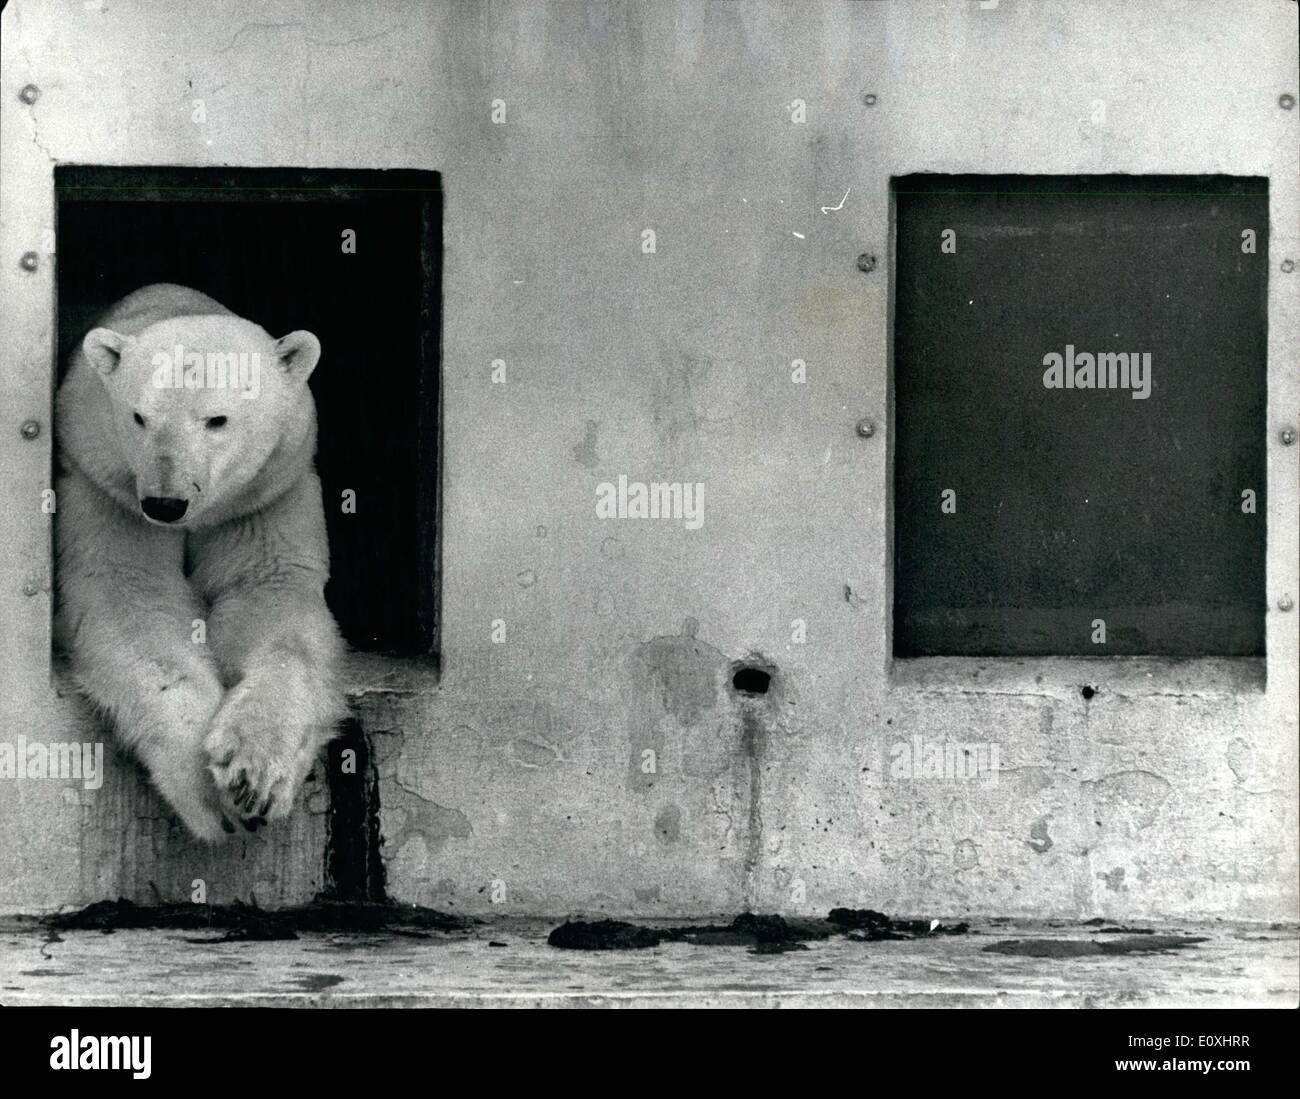 Jan. 01, 1967 - The waiting parts is the worst : Every father-to-be knows the feeling. The waiting part is the worst. In the case of Hans, a five-year-old polar bear at Dudley Zoo, Worcestershire, the waiting cart has already lasted five months - since his wife, Helga, went into confinement. Zoo staff built a darkened maternity ward for her, cut off from the outside world because polar bears prefer to give birth in private. No one, least of all Hans, has seen Helga since September, worse, no one, least of all Hans, whether Helga has given birth or not. It was understood she wanted to be alone - Stock Image